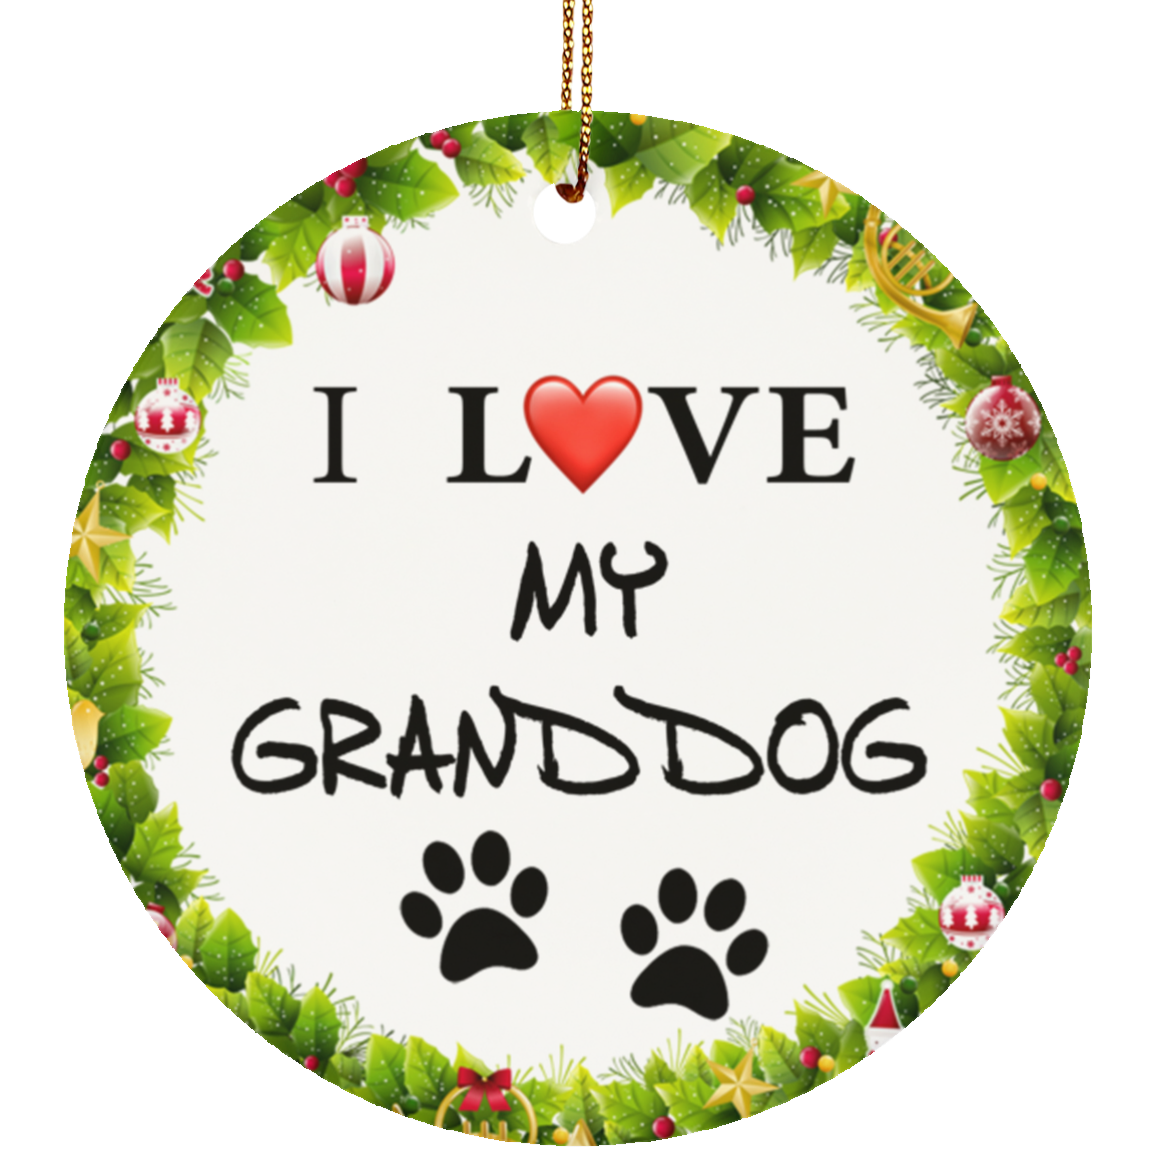 I love my granddogs ornament